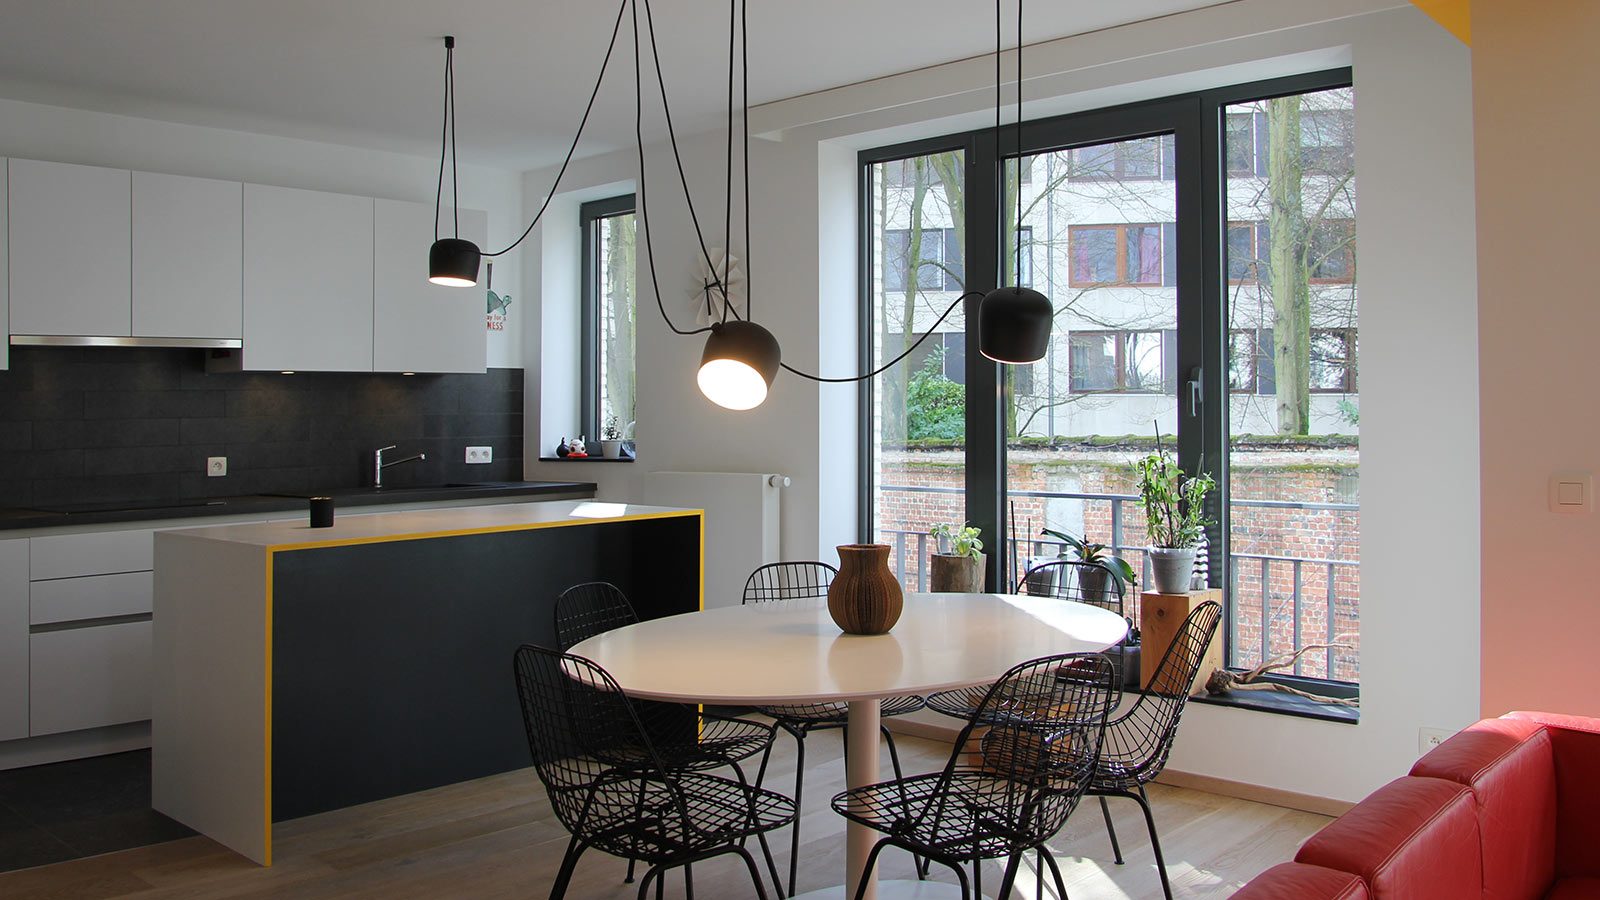 This apartment in Brussels uses cleverly designed furniture to maximize storage space